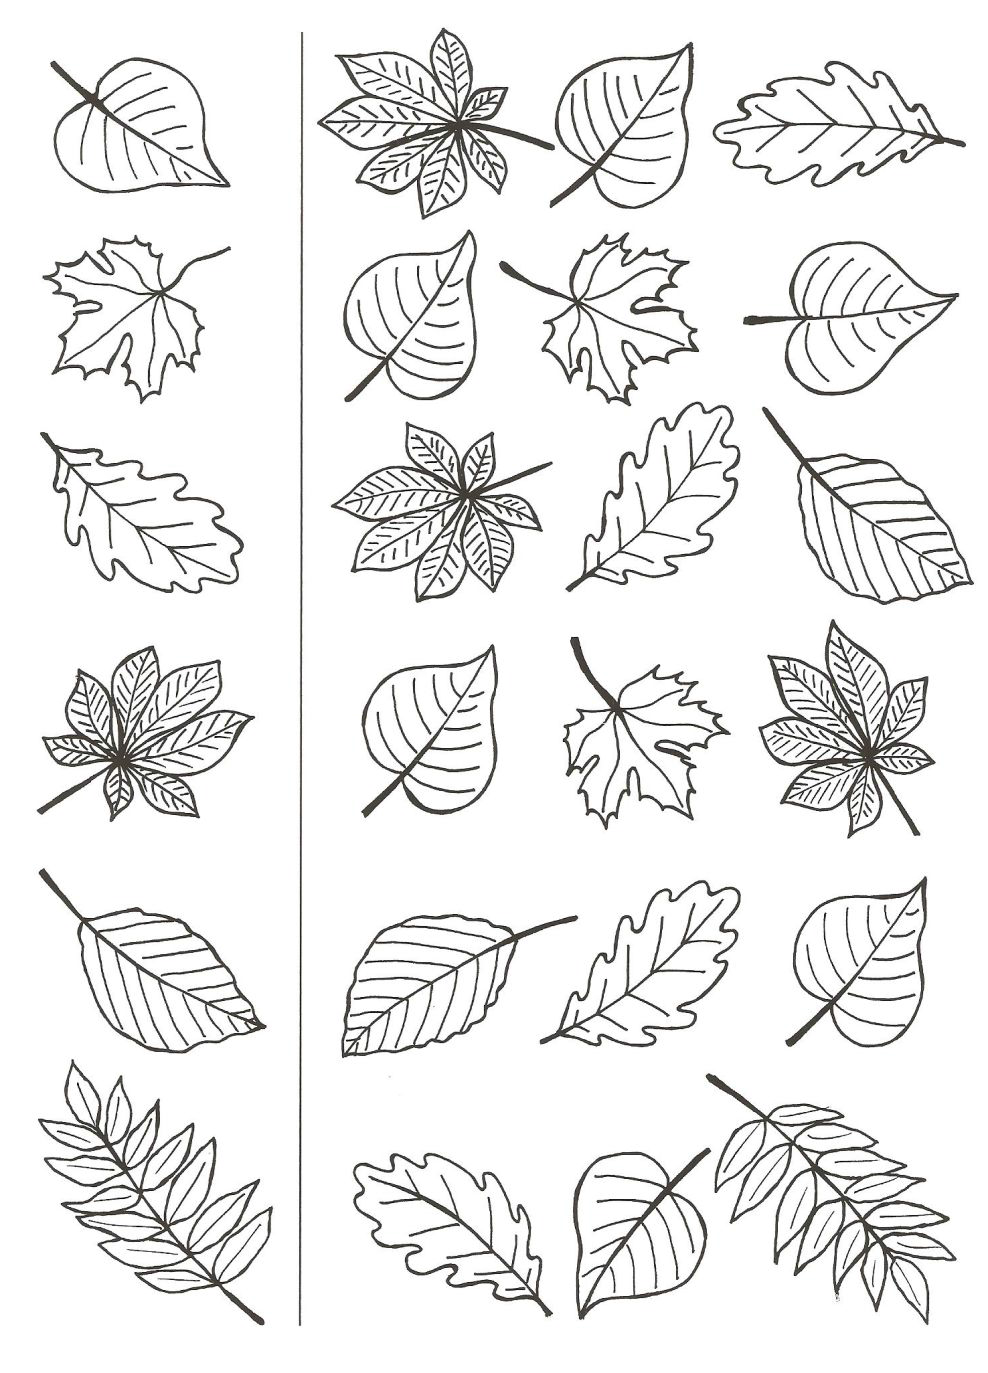 Pin By Mary Breveleri On Printables Pinterest Autumn Bullet And